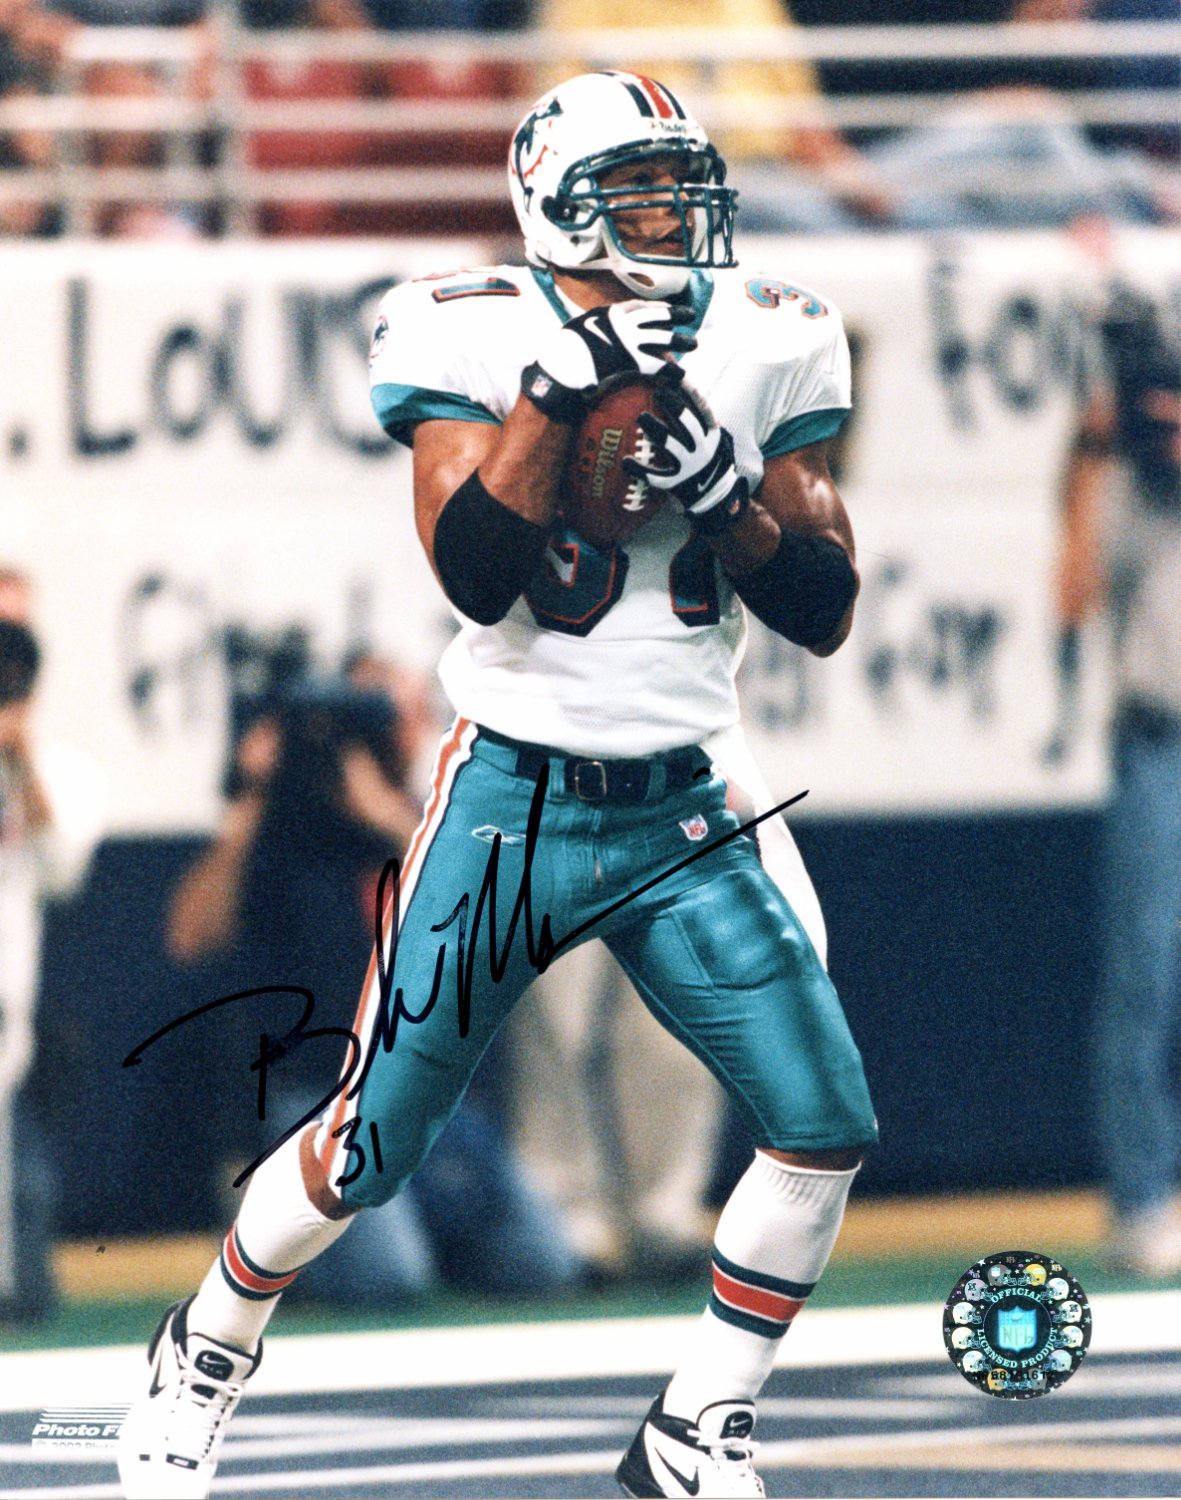 sale retailer daede 225ee Brock Marion Miami Dolphins Autographed Signed 8x10 Photo ...